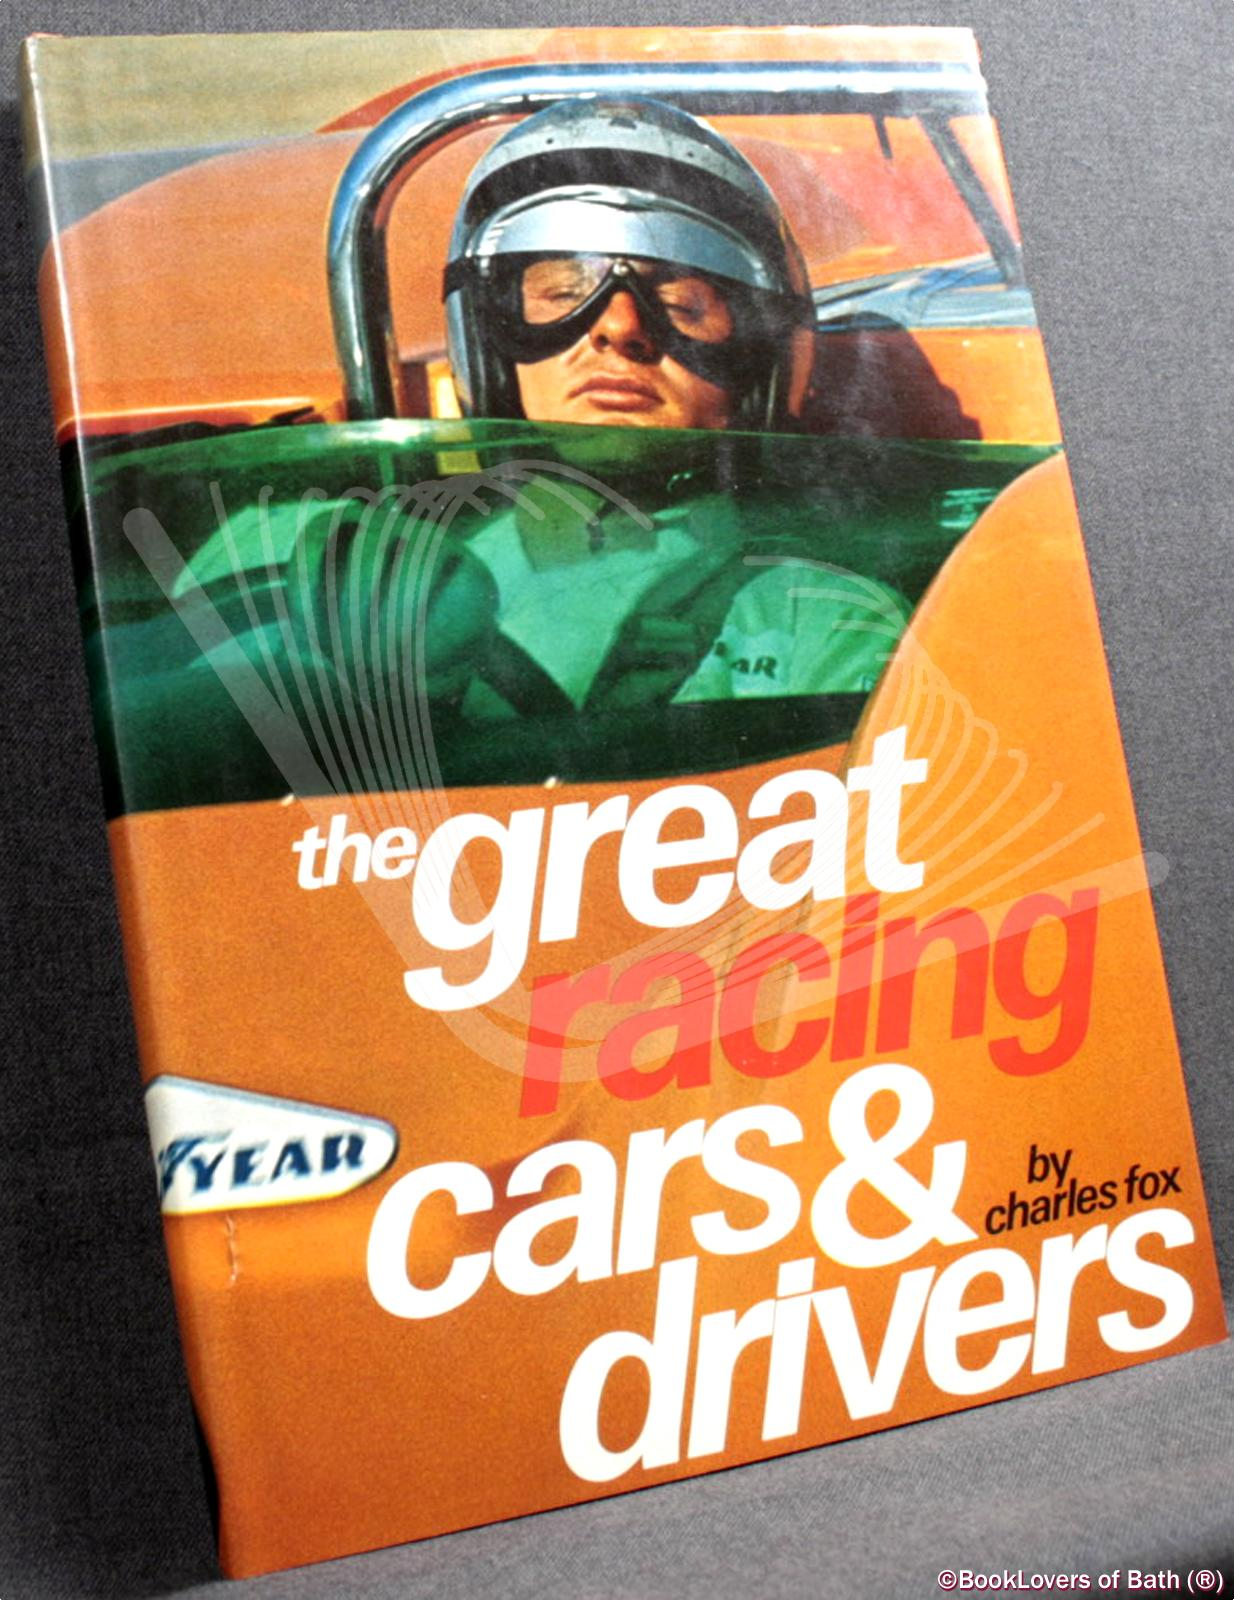 The Great Racing Cars and Drivers - Charles Fox